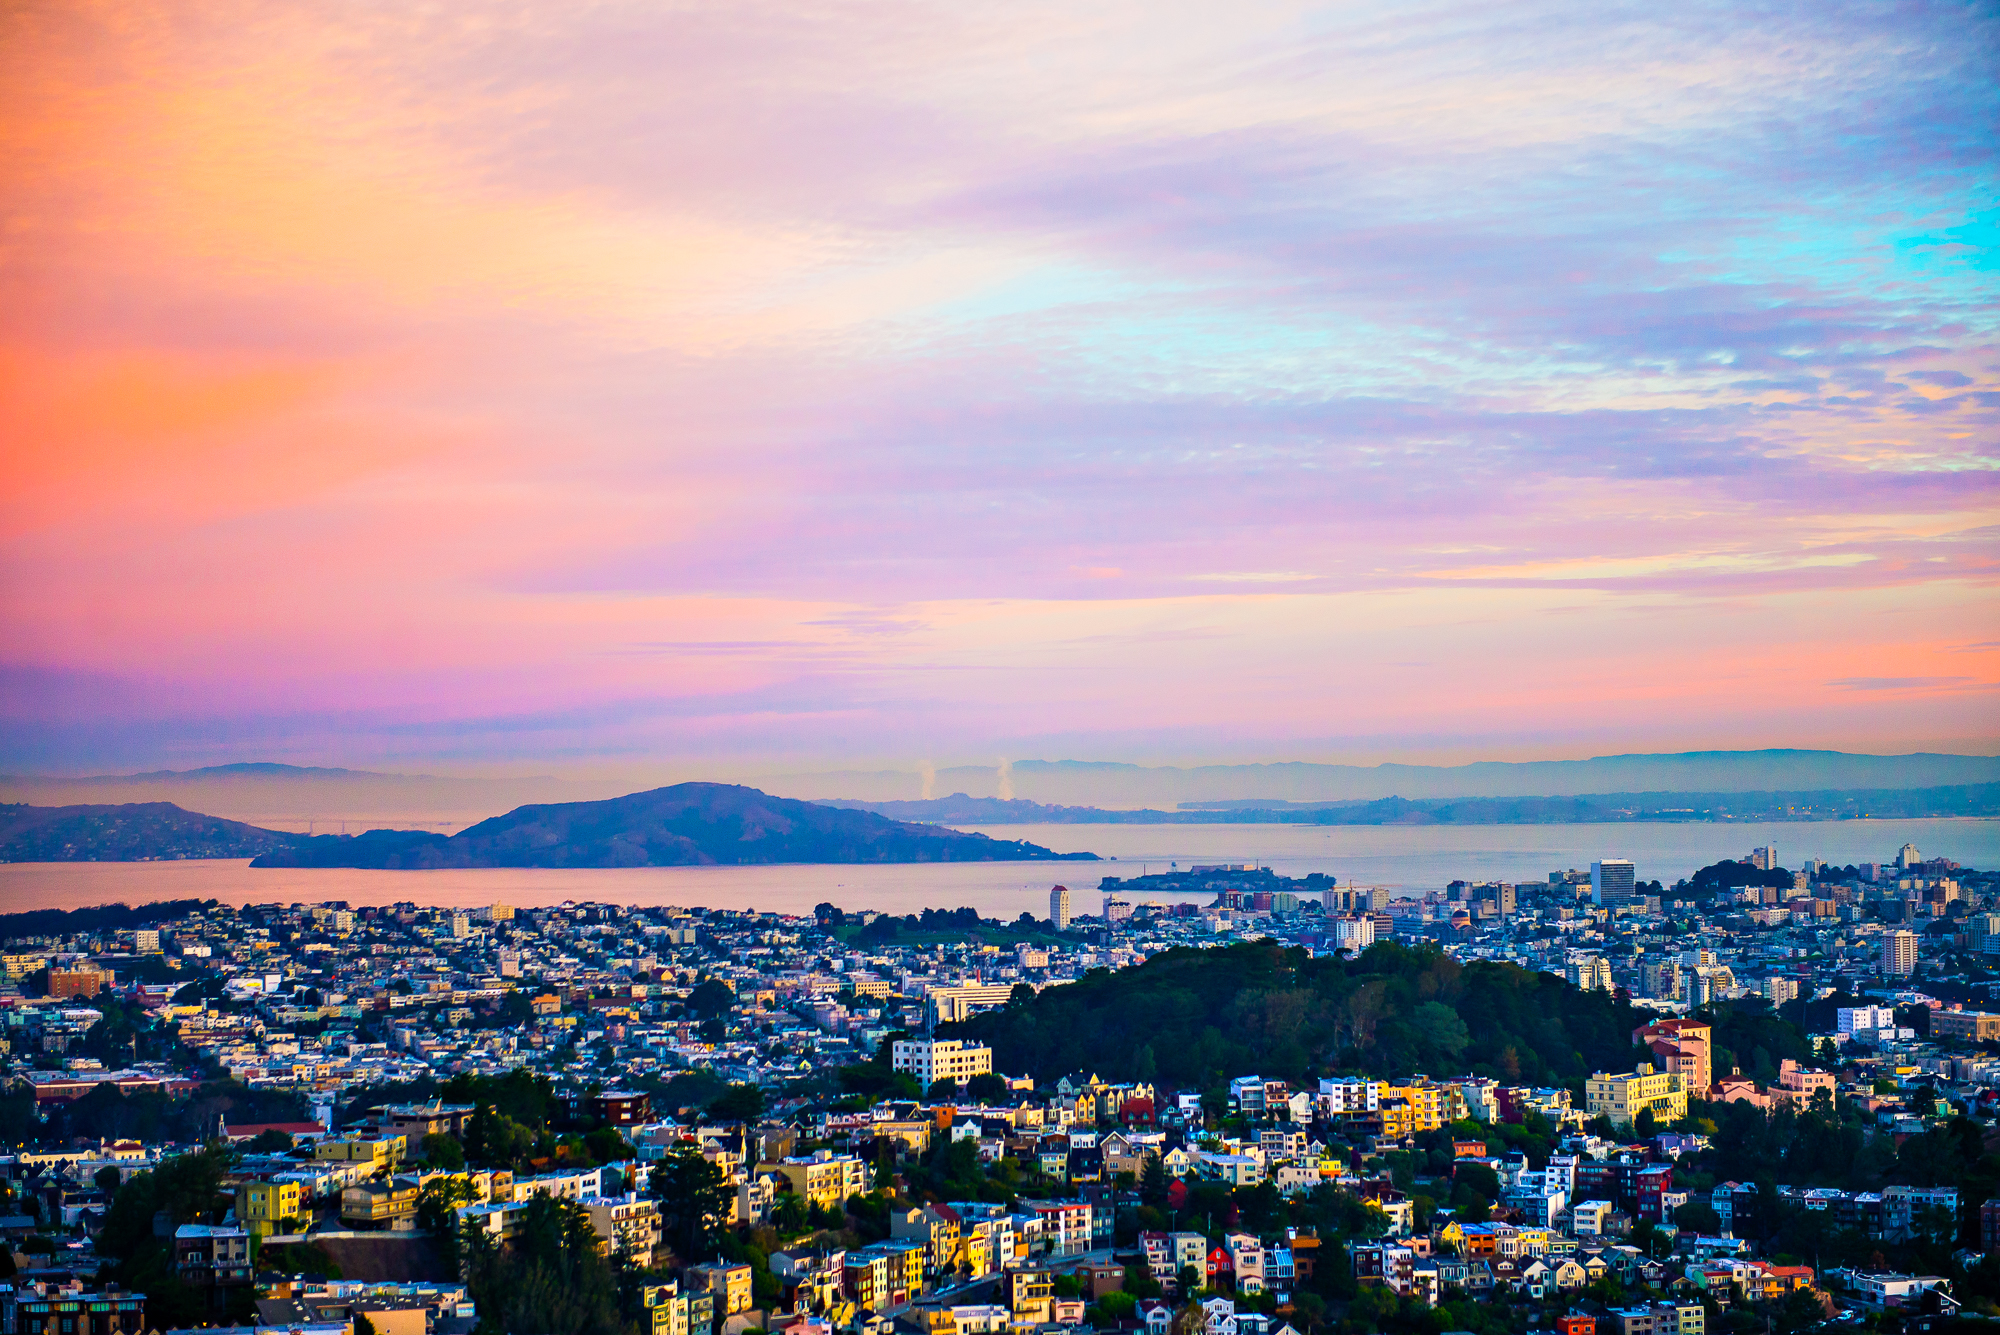 Sunrise overlooking the city from the top of Twin Peaks in San Francisco, Calif.  (© Hanna A. Yamamoto 2014)